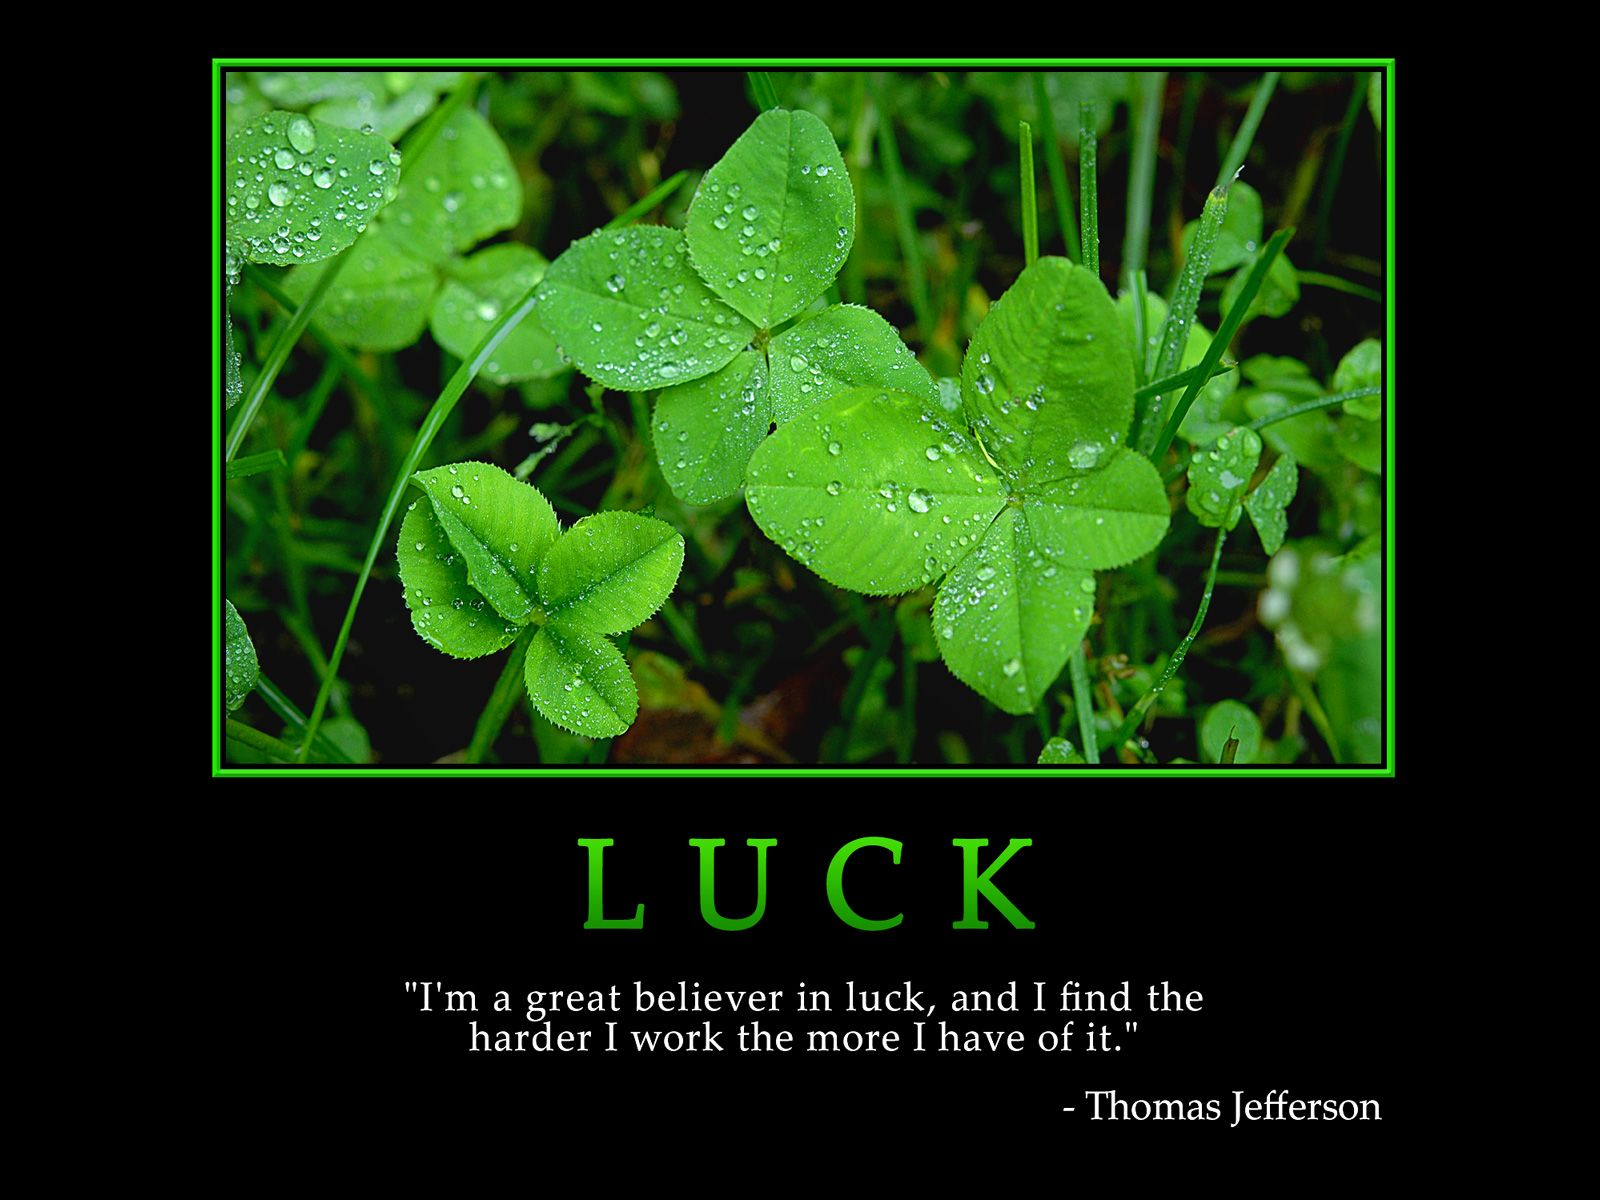 Motivational Wallpapers Good Luck Quotes Luck Quotes Work Motivational Quotes